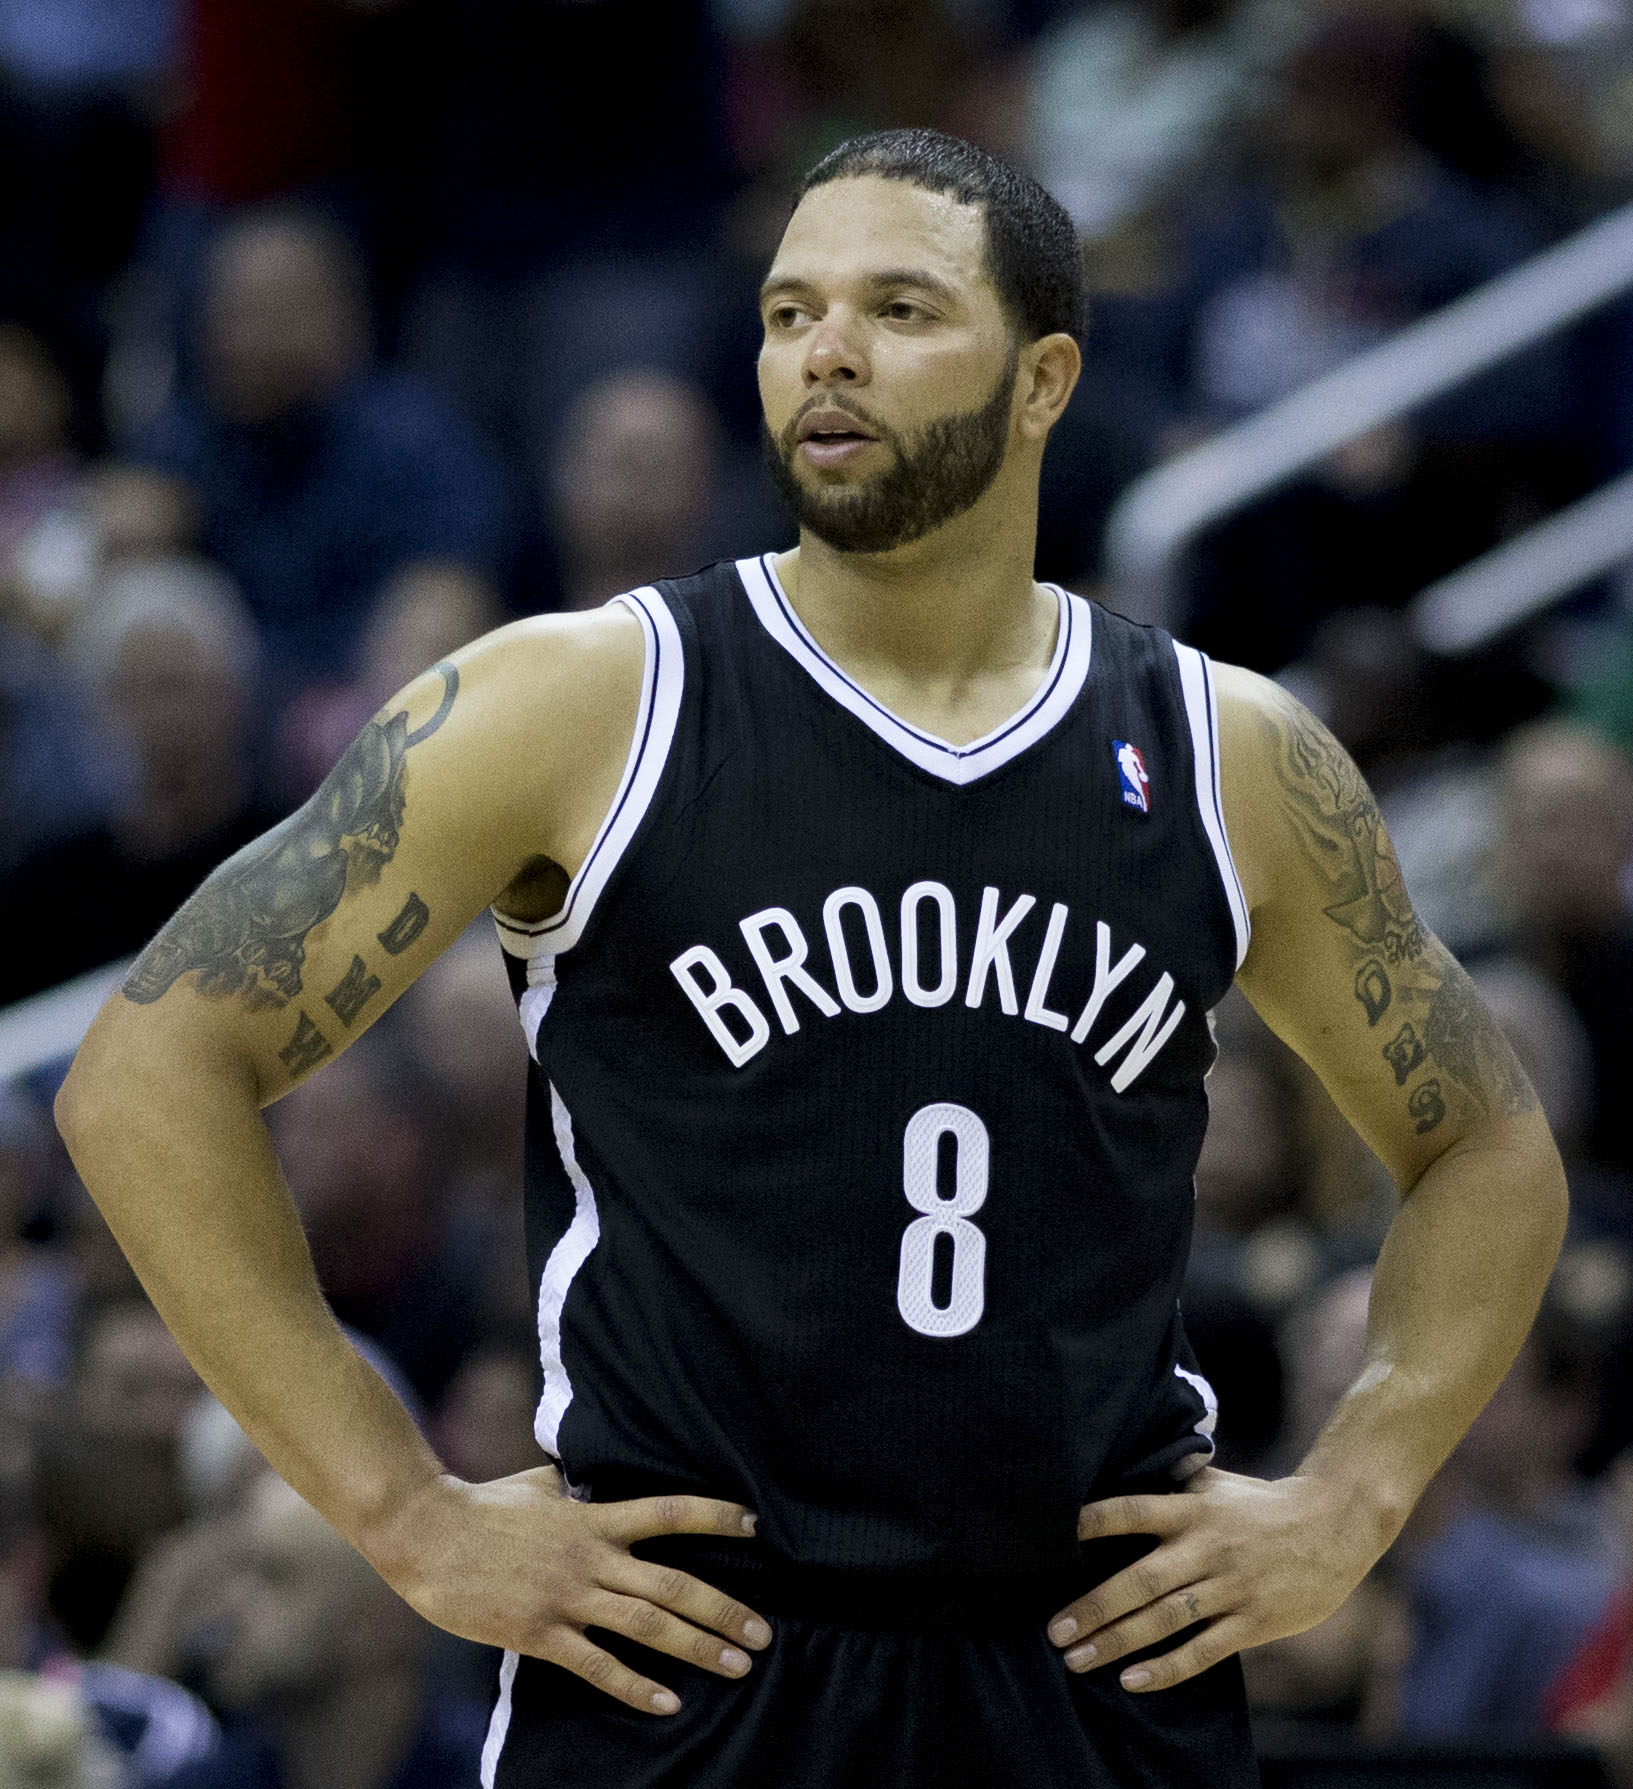 The 33-year old son of father (?) and mother(?), 191 cm tall Deron Williams in 2018 photo